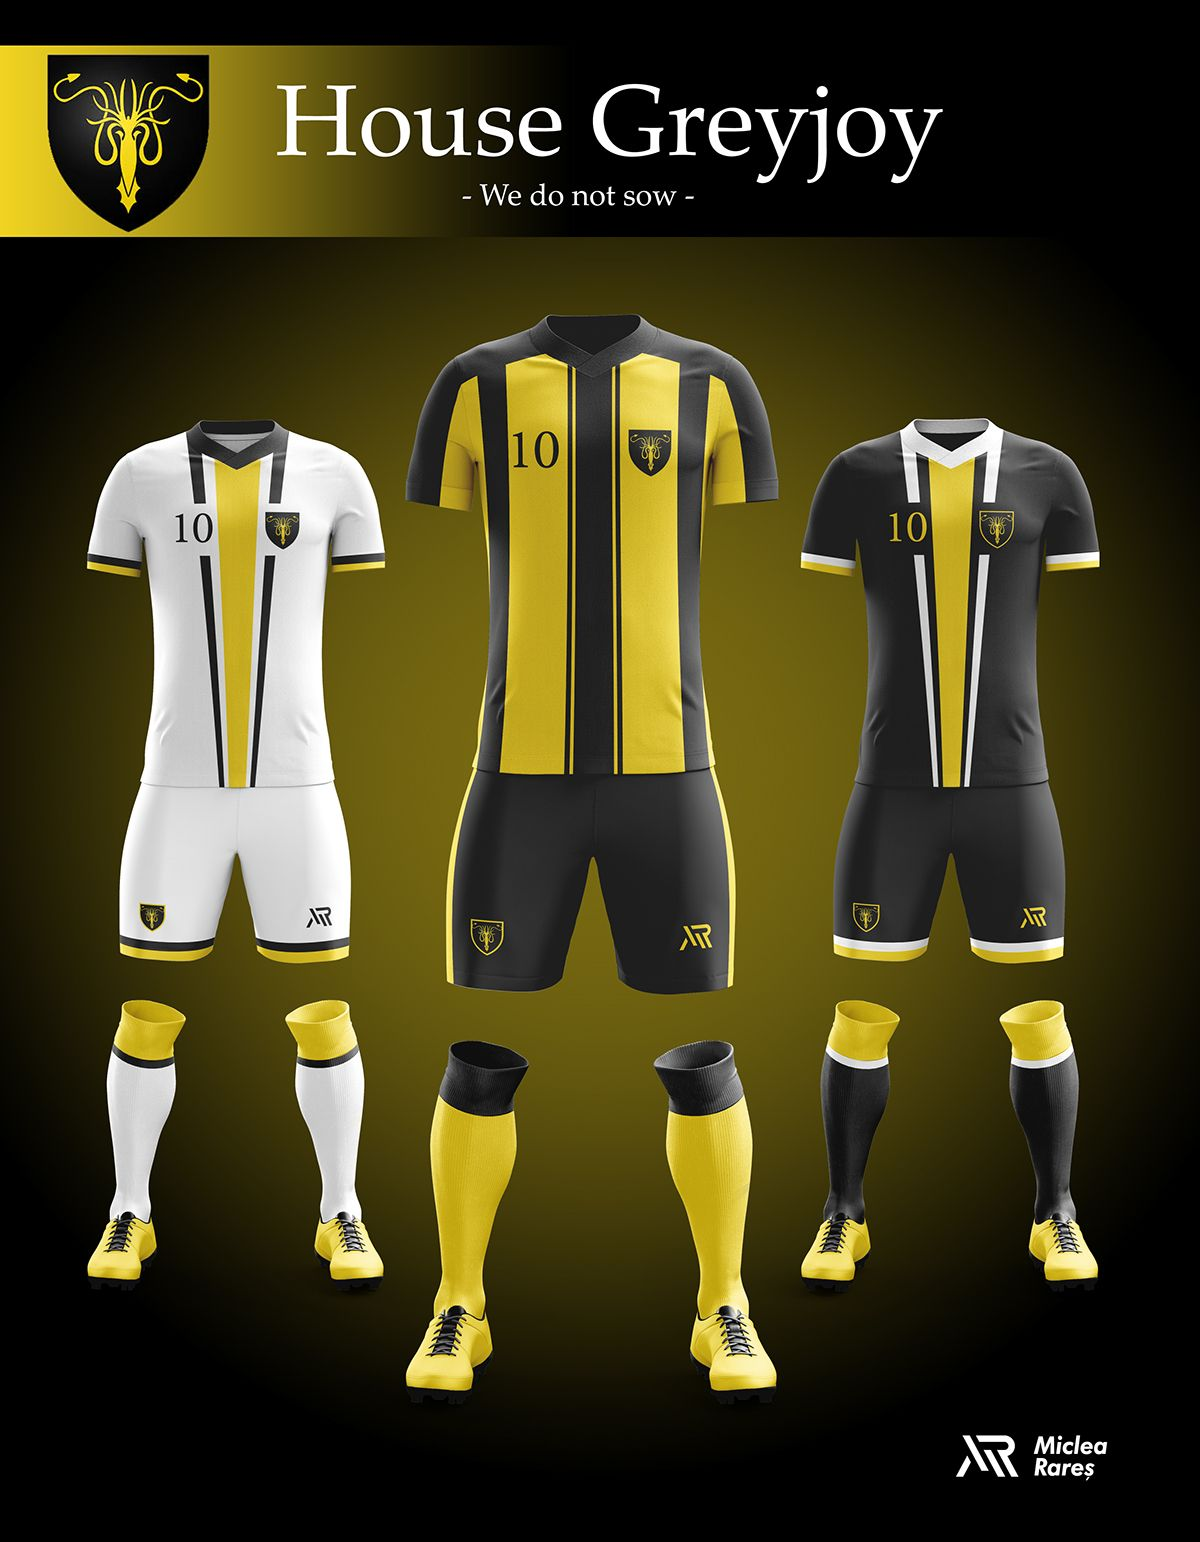 c249699f53 Concept - Game of Thrones football kits on Behance Clube